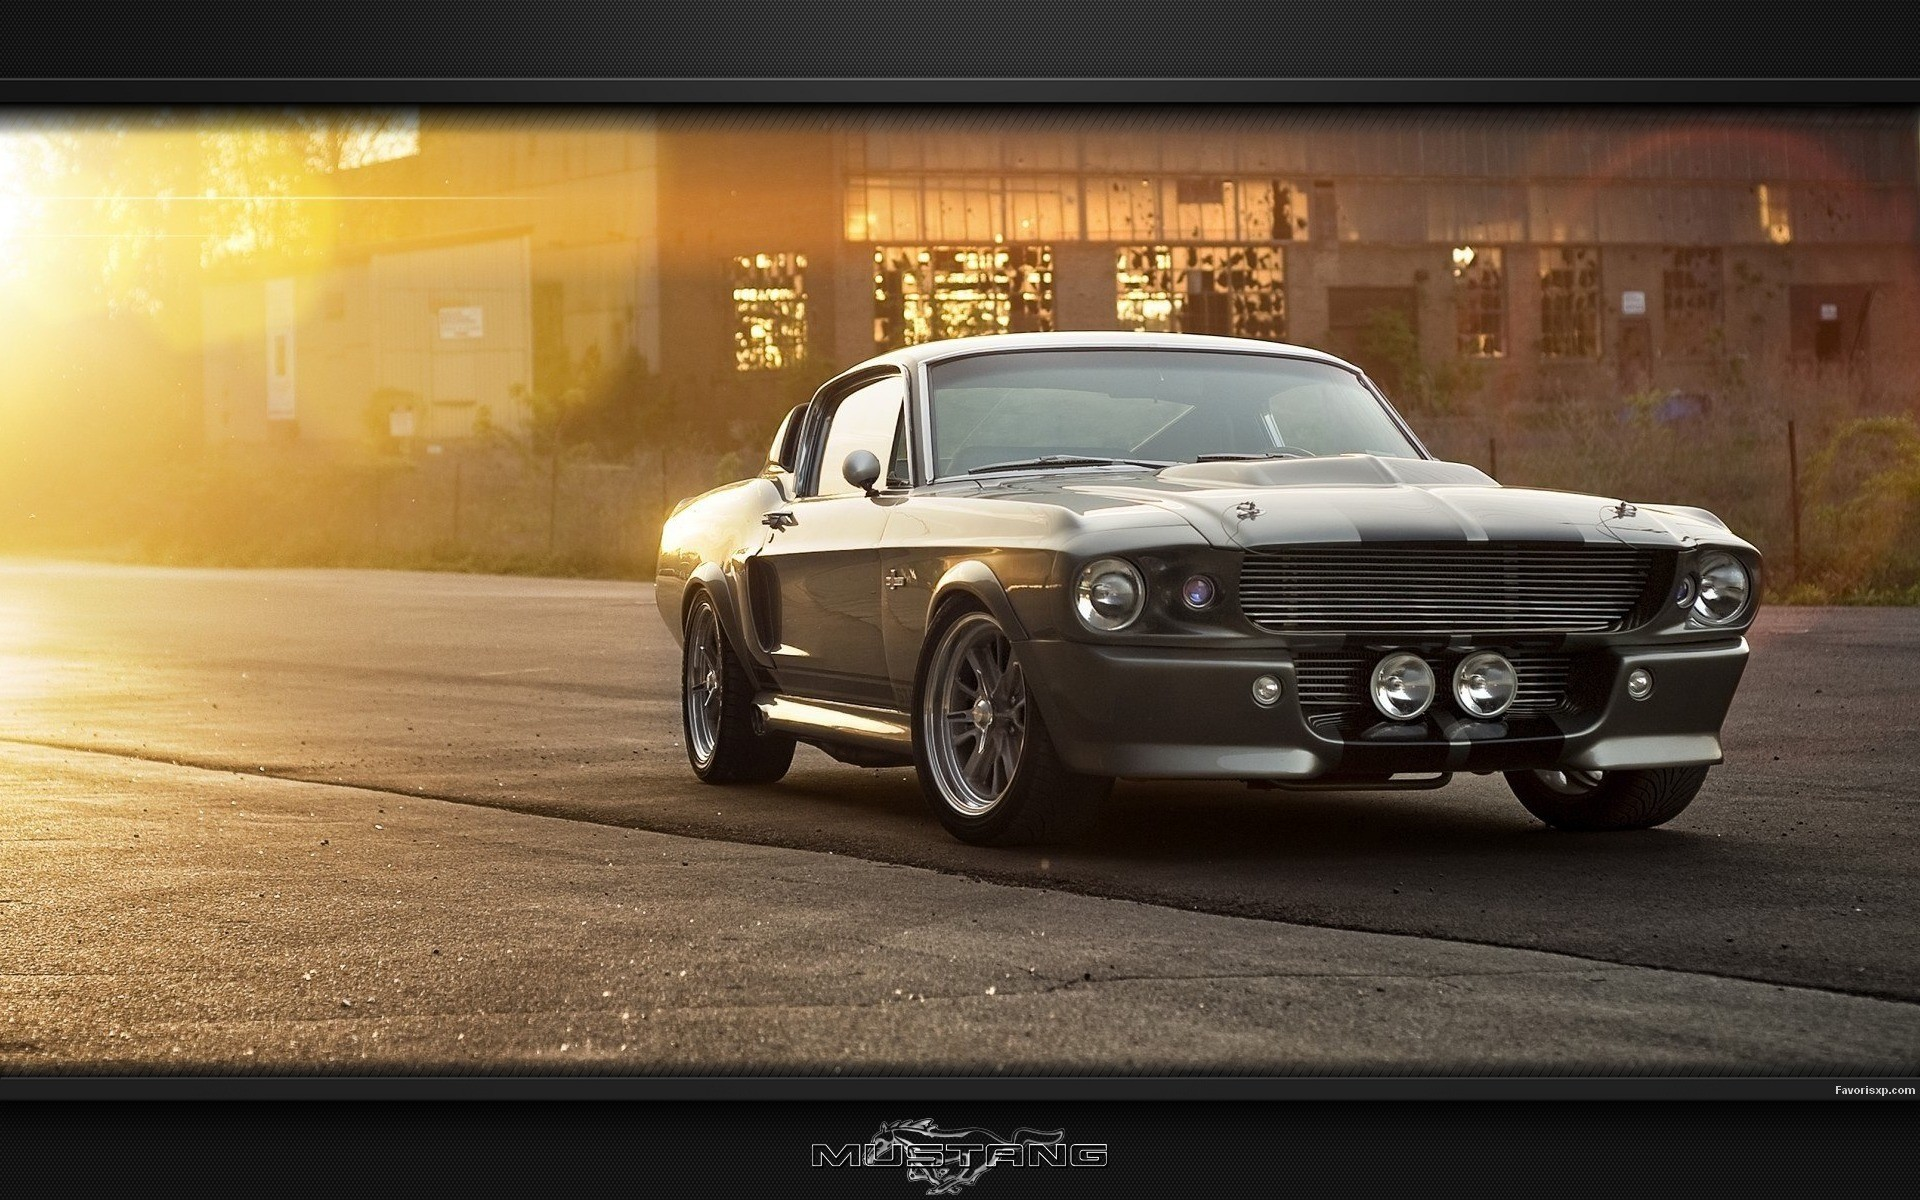 Ford Mustang Shelby GT500 (68 Photos)